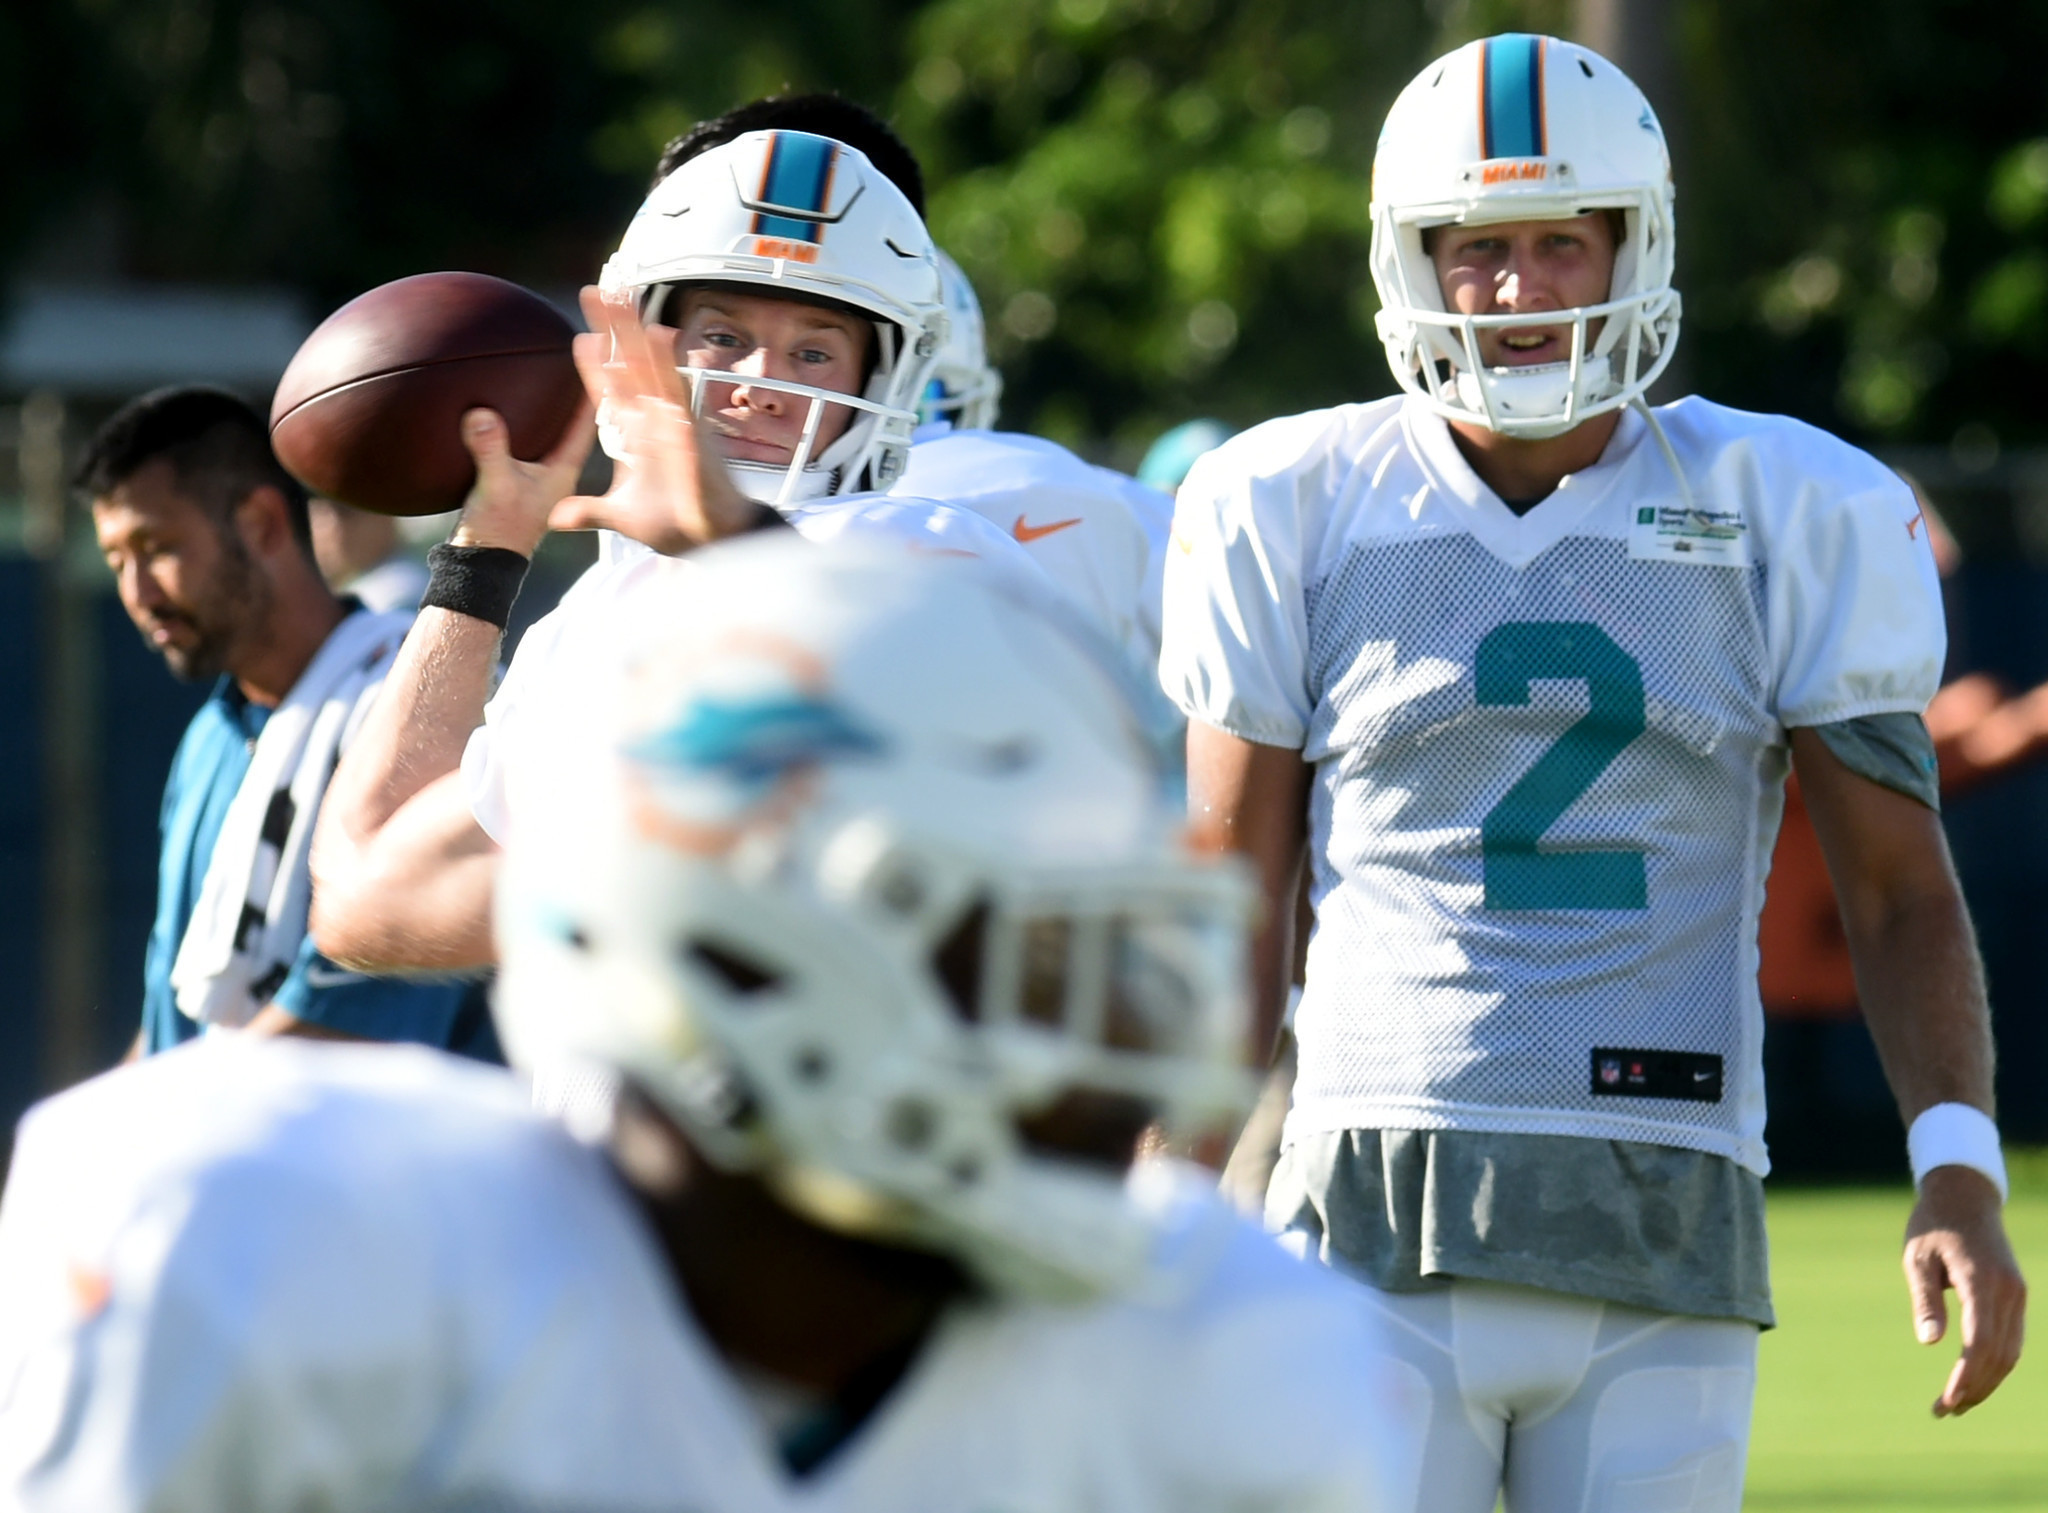 Sfl-dolphins-camp-highlights-another-strong-day-for-offense-20160810